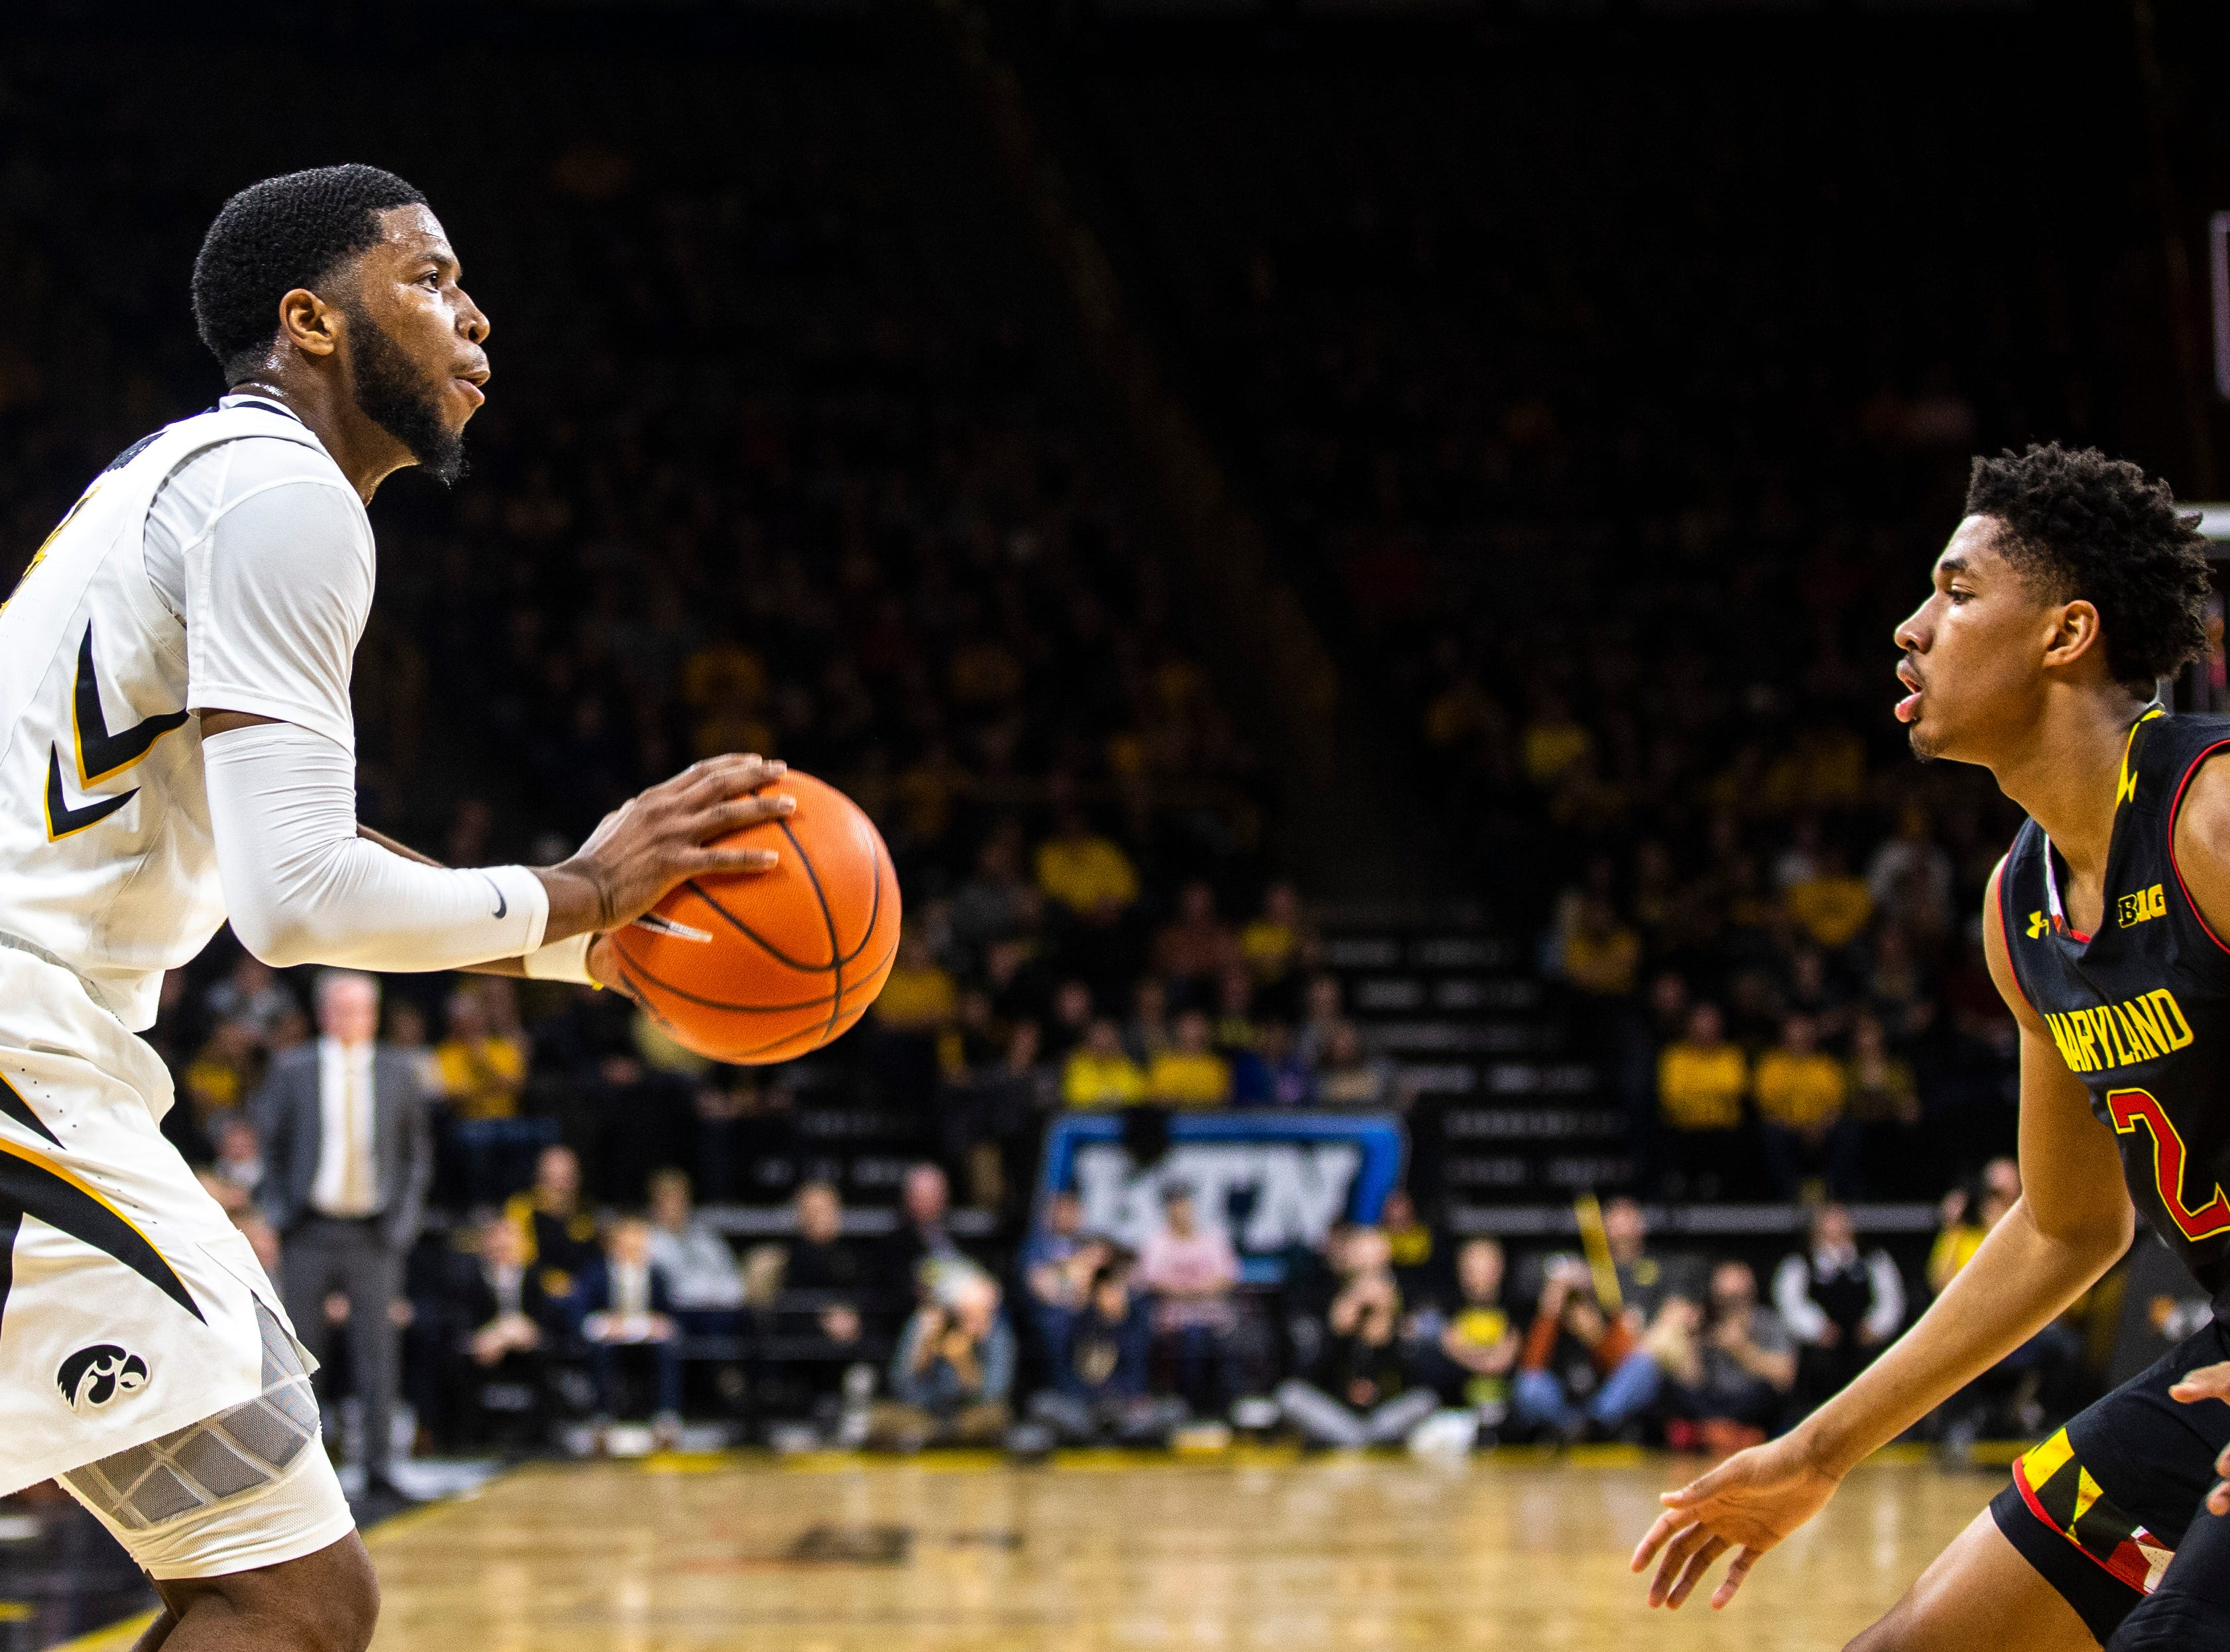 Iowa guard Isaiah Moss (4) rises to shoot a 3-point basket while Maryland guard Aaron Wiggins (2) defends during a NCAA Big Ten Conference men's basketball game on Tuesday, Feb. 19, 2019 at Carver-Hawkeye Arena in Iowa City, Iowa.